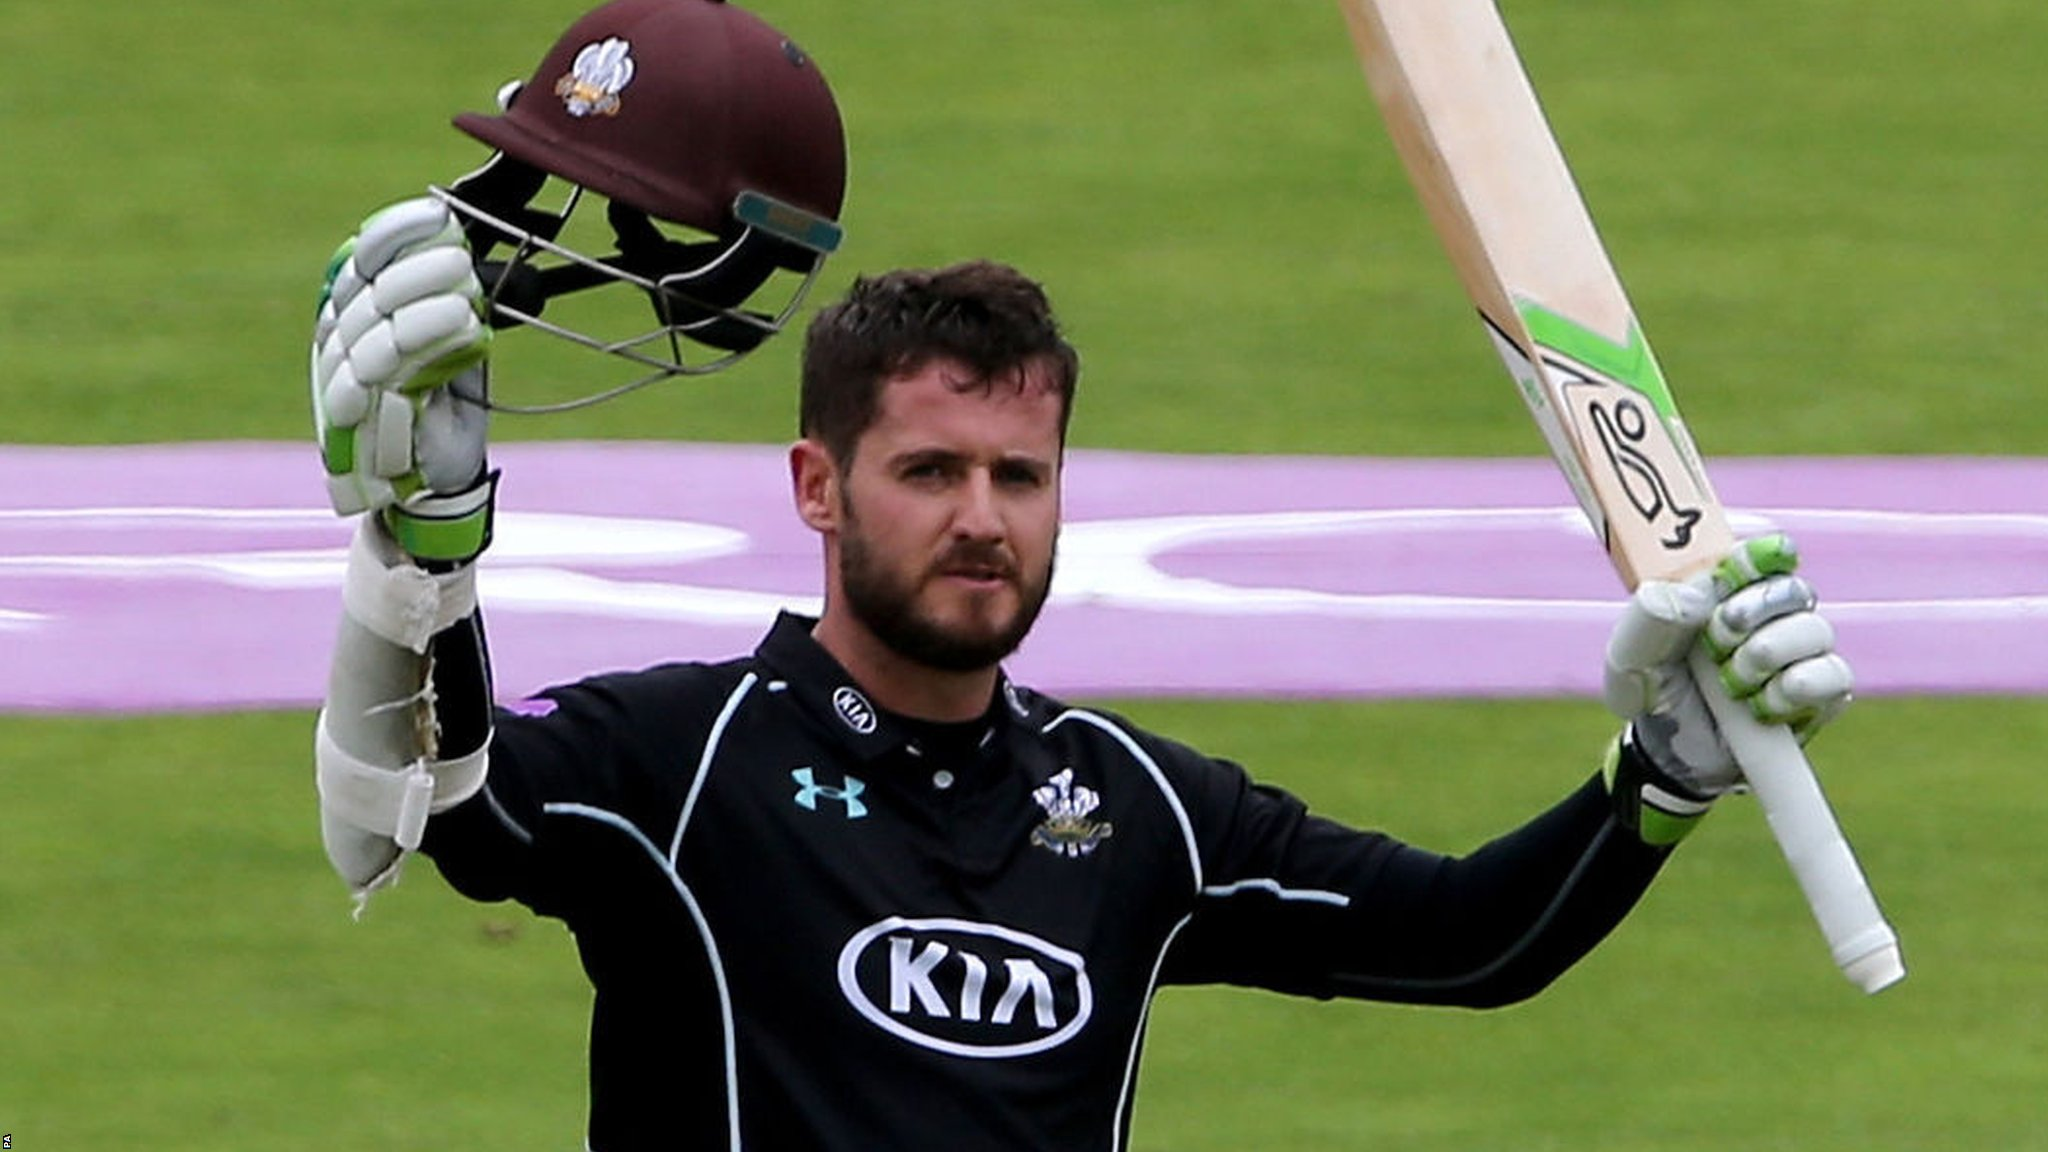 Davies leads Surrey into One-Day Cup final